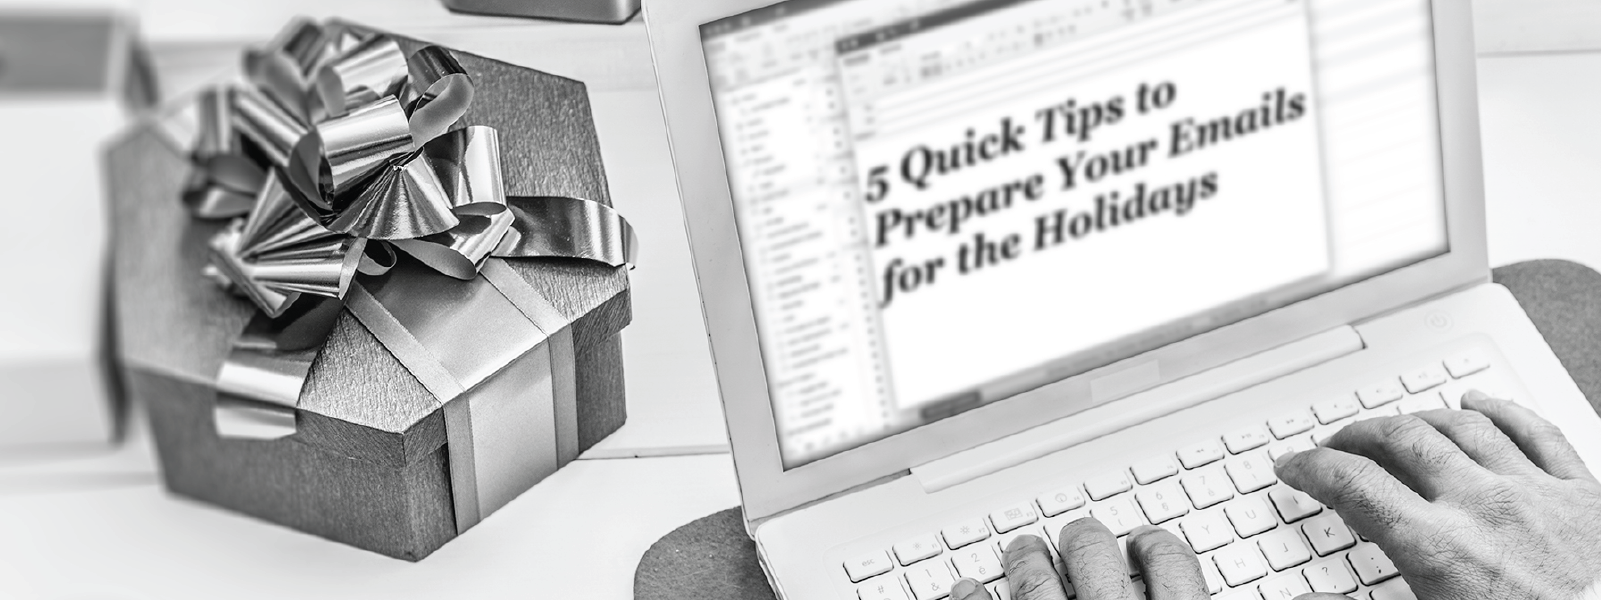 5 quick tips to prepare your emails for the holidays